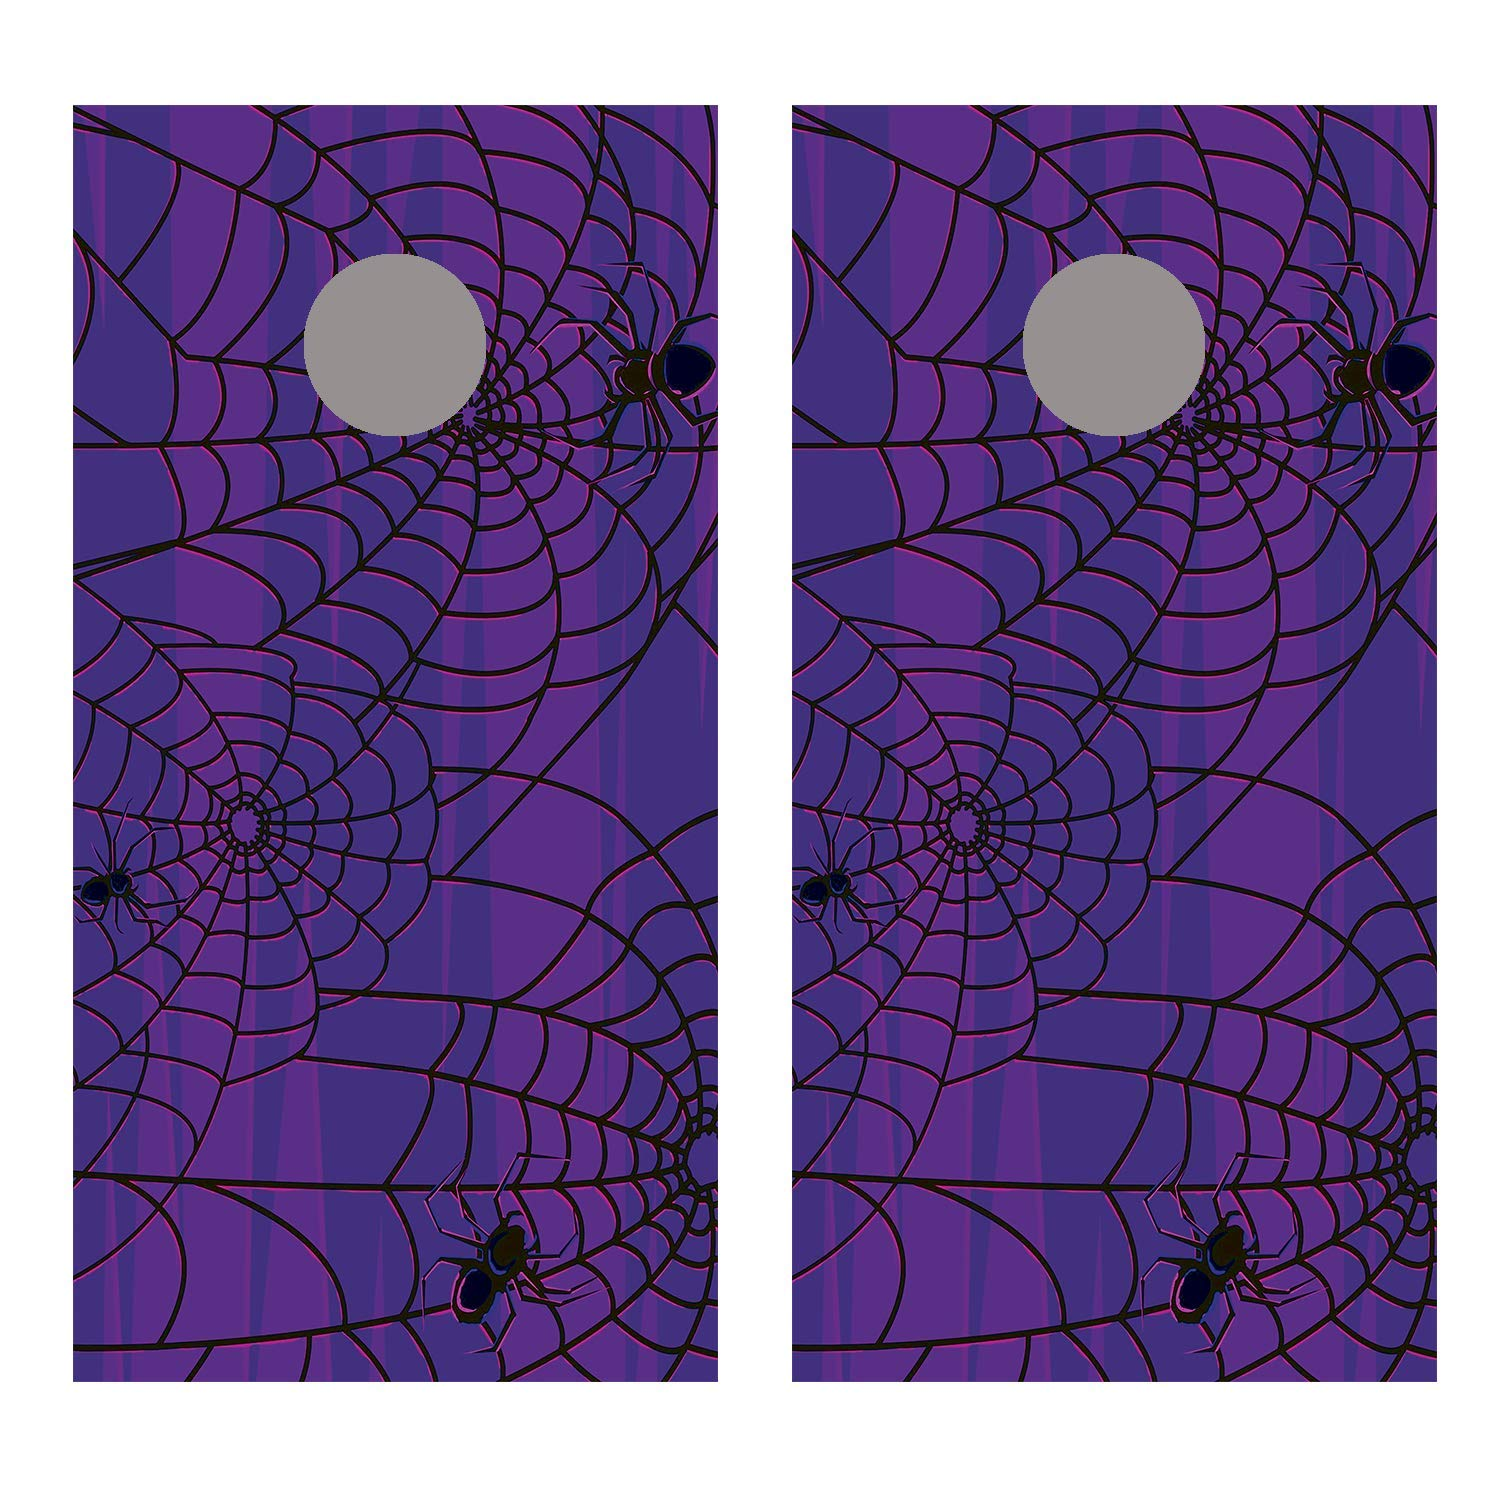 Let's Print Big Spider Webs Over Purple コーンホールボードデカールラップ B07HBDS6W7